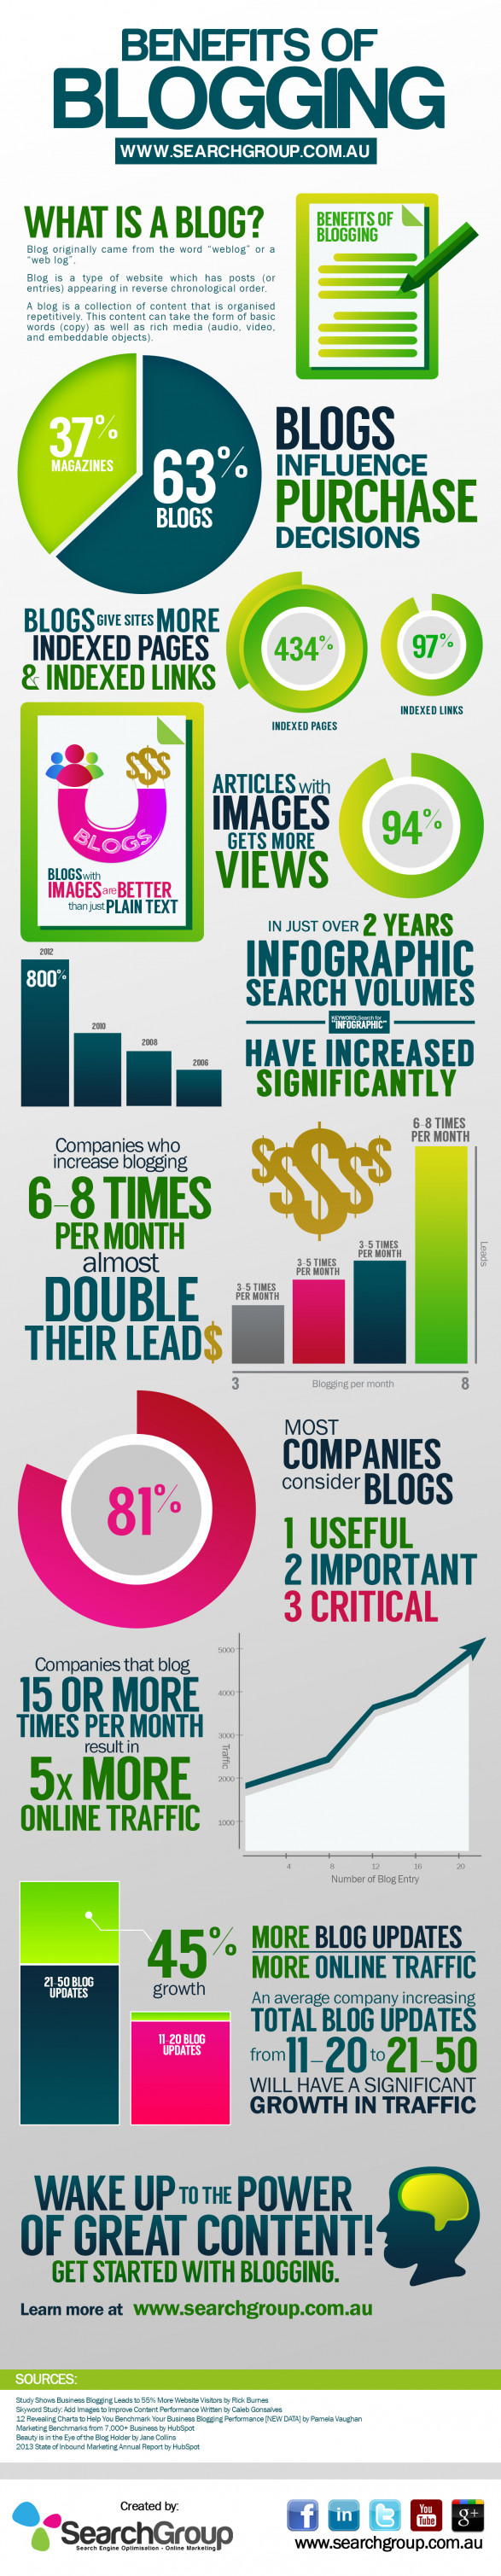 benefits of blogging 522d607771d6b w587 The Power of Great Content. Start with blogging!